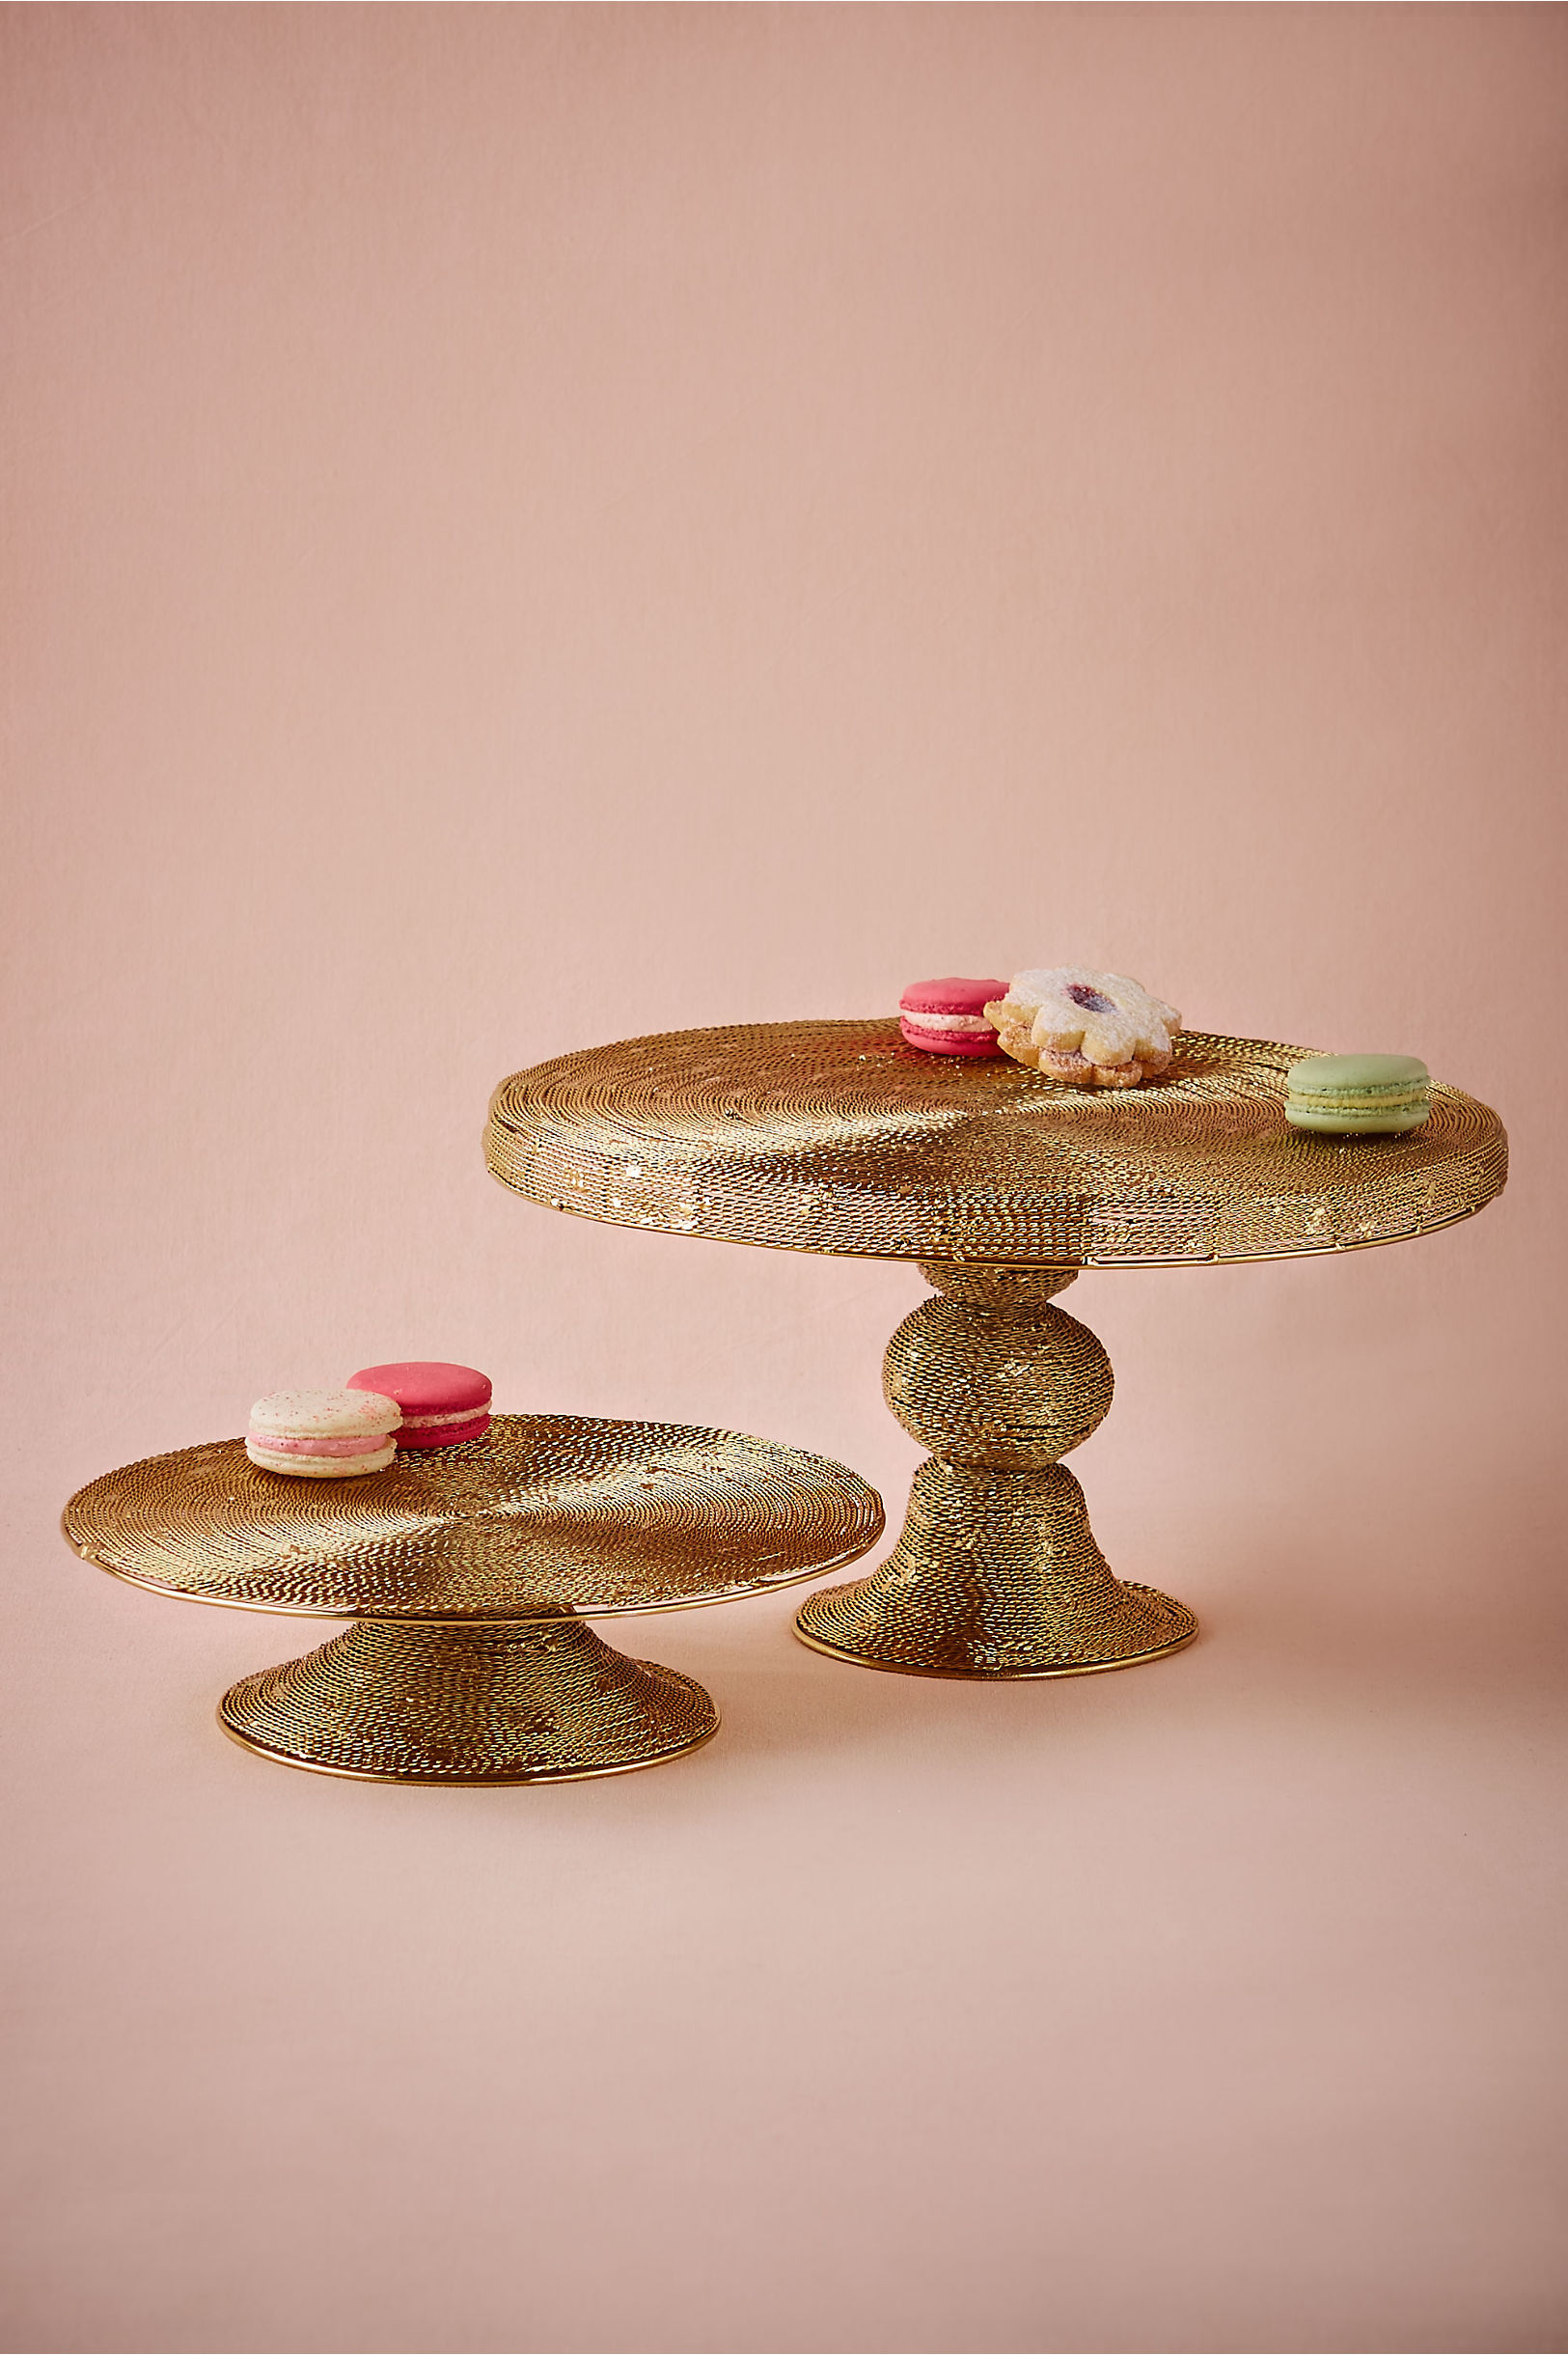 Decorative Cake Stands Spun Gold Cake Stand In Sale Dccor Bhldn